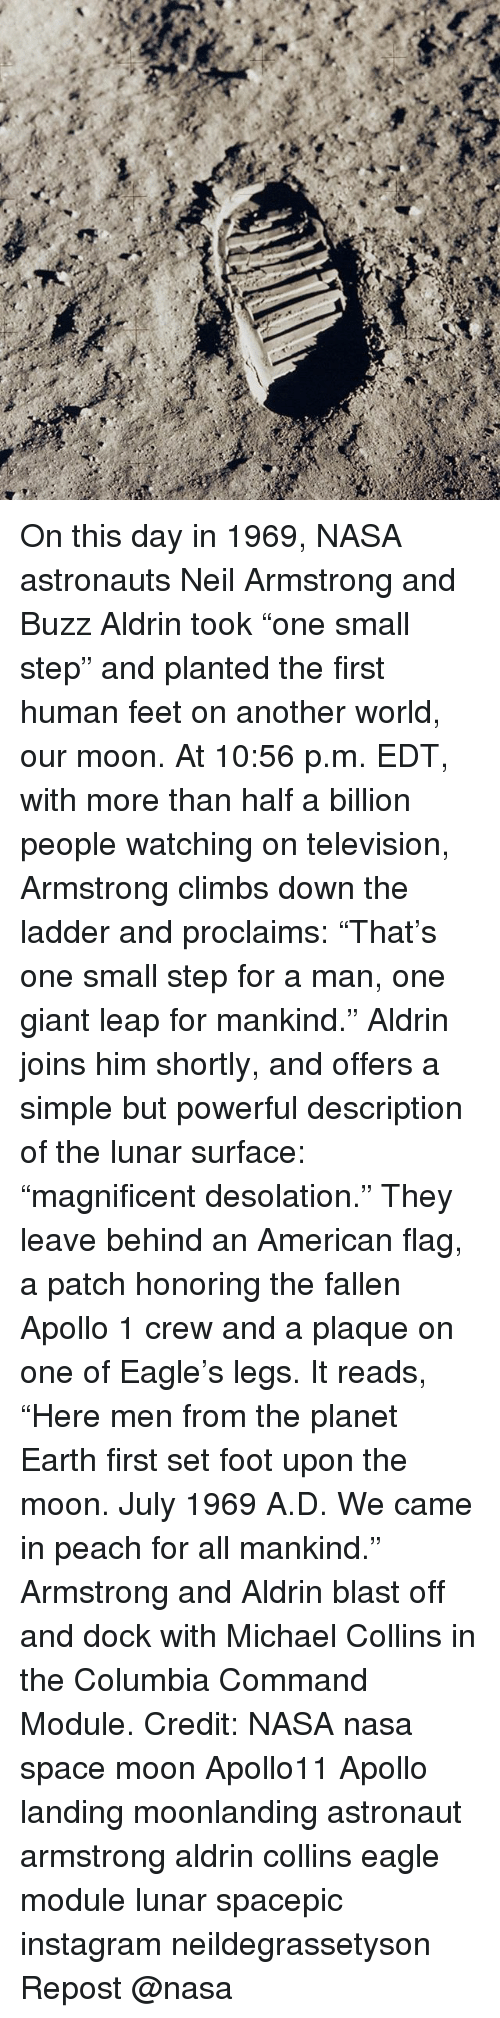 """Buzz Aldrin: On this day in 1969, NASA astronauts Neil Armstrong and Buzz Aldrin took """"one small step"""" and planted the first human feet on another world, our moon. At 10:56 p.m. EDT, with more than half a billion people watching on television, Armstrong climbs down the ladder and proclaims: """"That's one small step for a man, one giant leap for mankind."""" Aldrin joins him shortly, and offers a simple but powerful description of the lunar surface: """"magnificent desolation."""" They leave behind an American flag, a patch honoring the fallen Apollo 1 crew and a plaque on one of Eagle's legs. It reads, """"Here men from the planet Earth first set foot upon the moon. July 1969 A.D. We came in peach for all mankind."""" Armstrong and Aldrin blast off and dock with Michael Collins in the Columbia Command Module. Credit: NASA nasa space moon Apollo11 Apollo landing moonlanding astronaut armstrong aldrin collins eagle module lunar spacepic instagram neildegrassetyson Repost @nasa"""